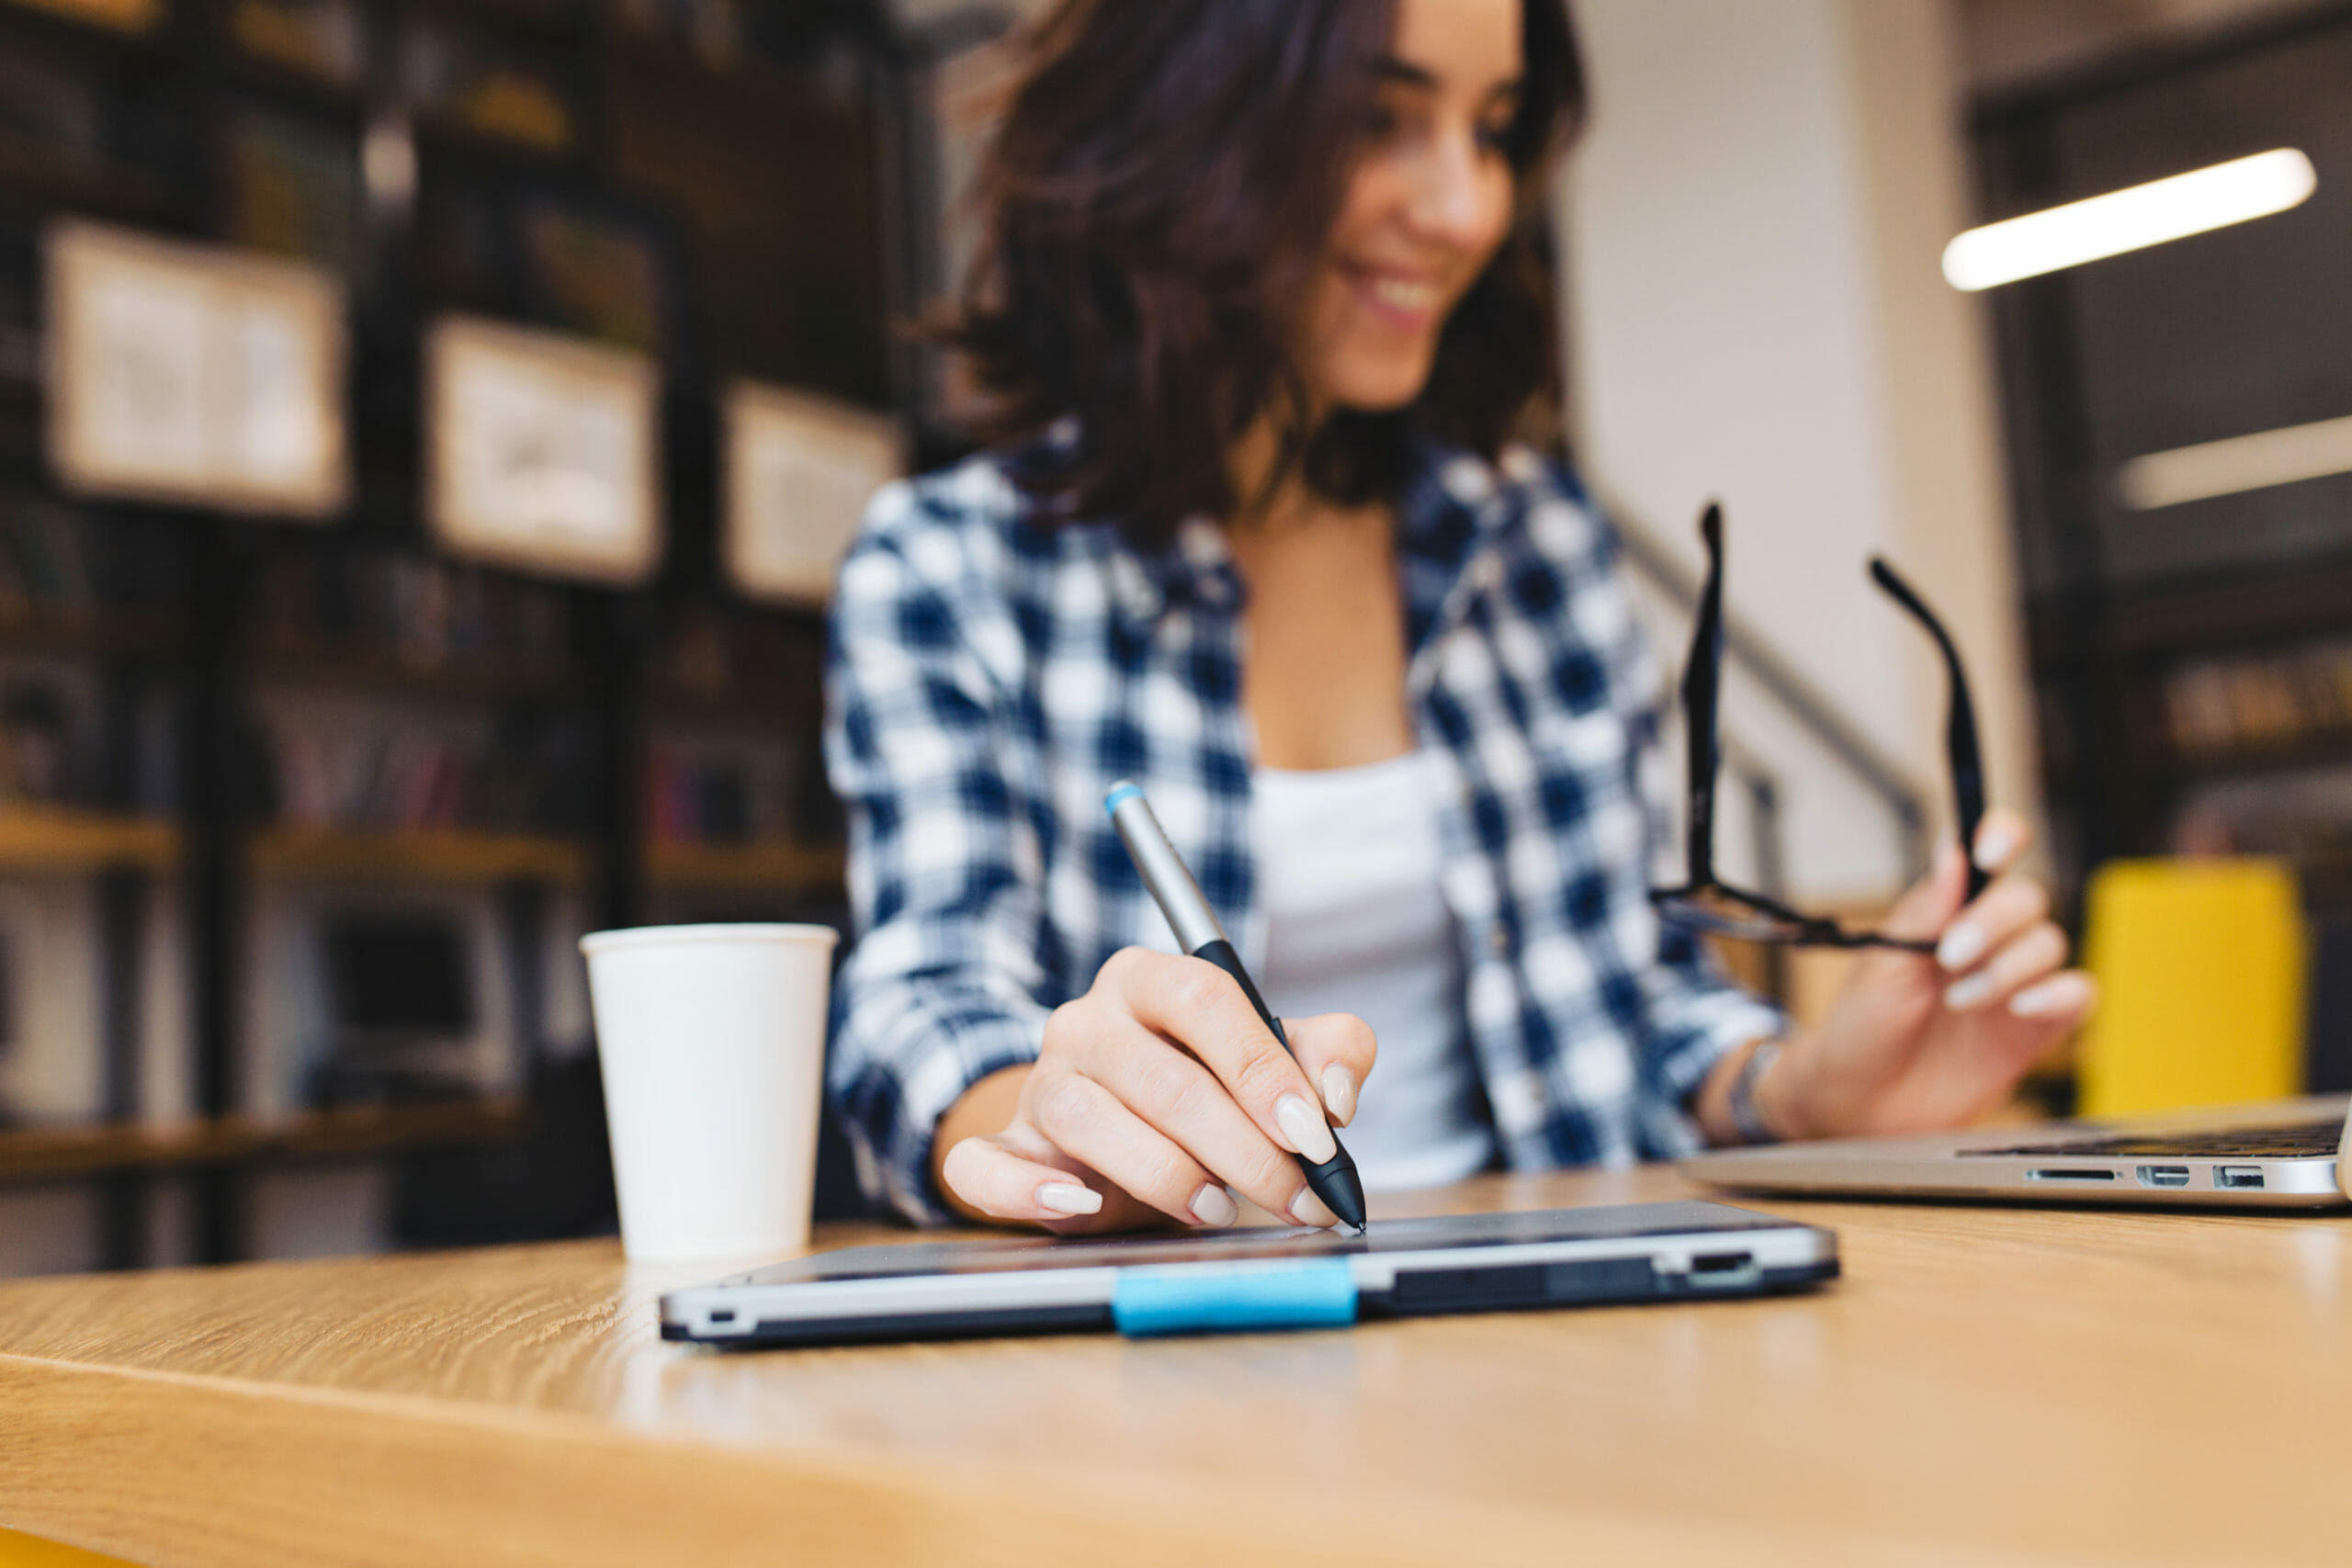 From Remote Work to Digitization, Here are 5 Modern Workplace Trends Your Business Needs in 2020